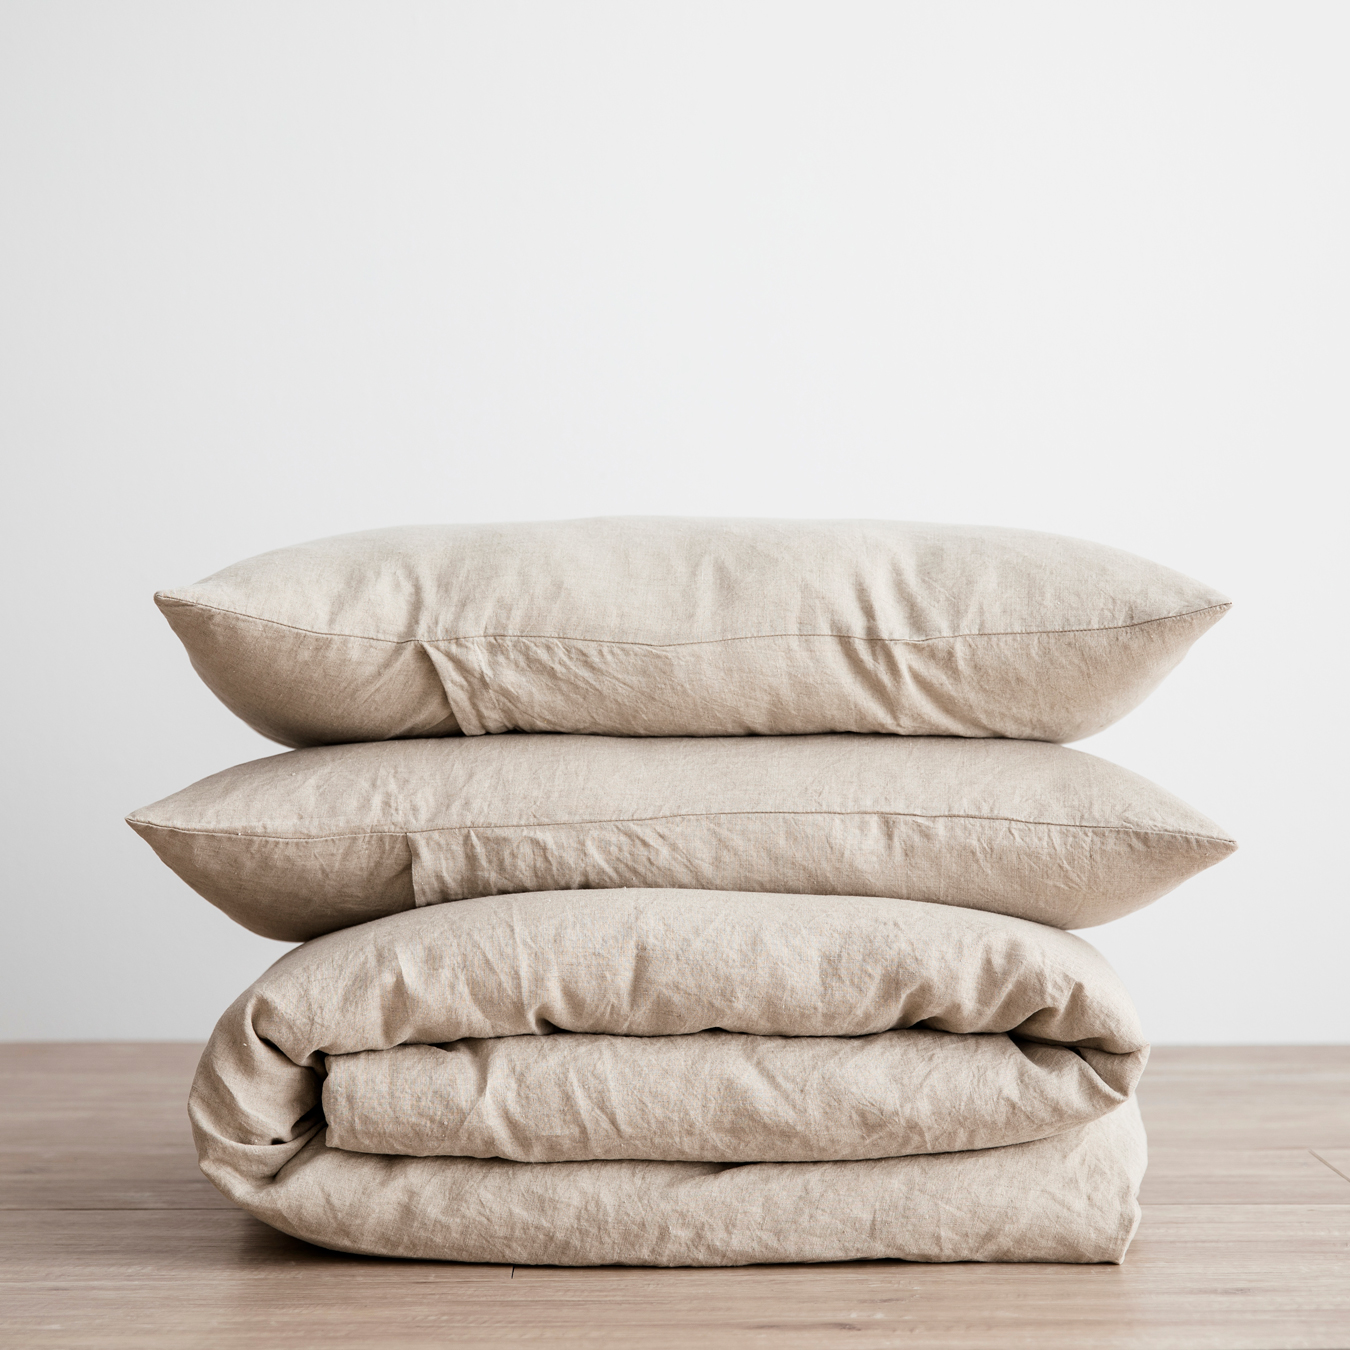 King Linen Duvet Cover Set - with pillowcases - Natural